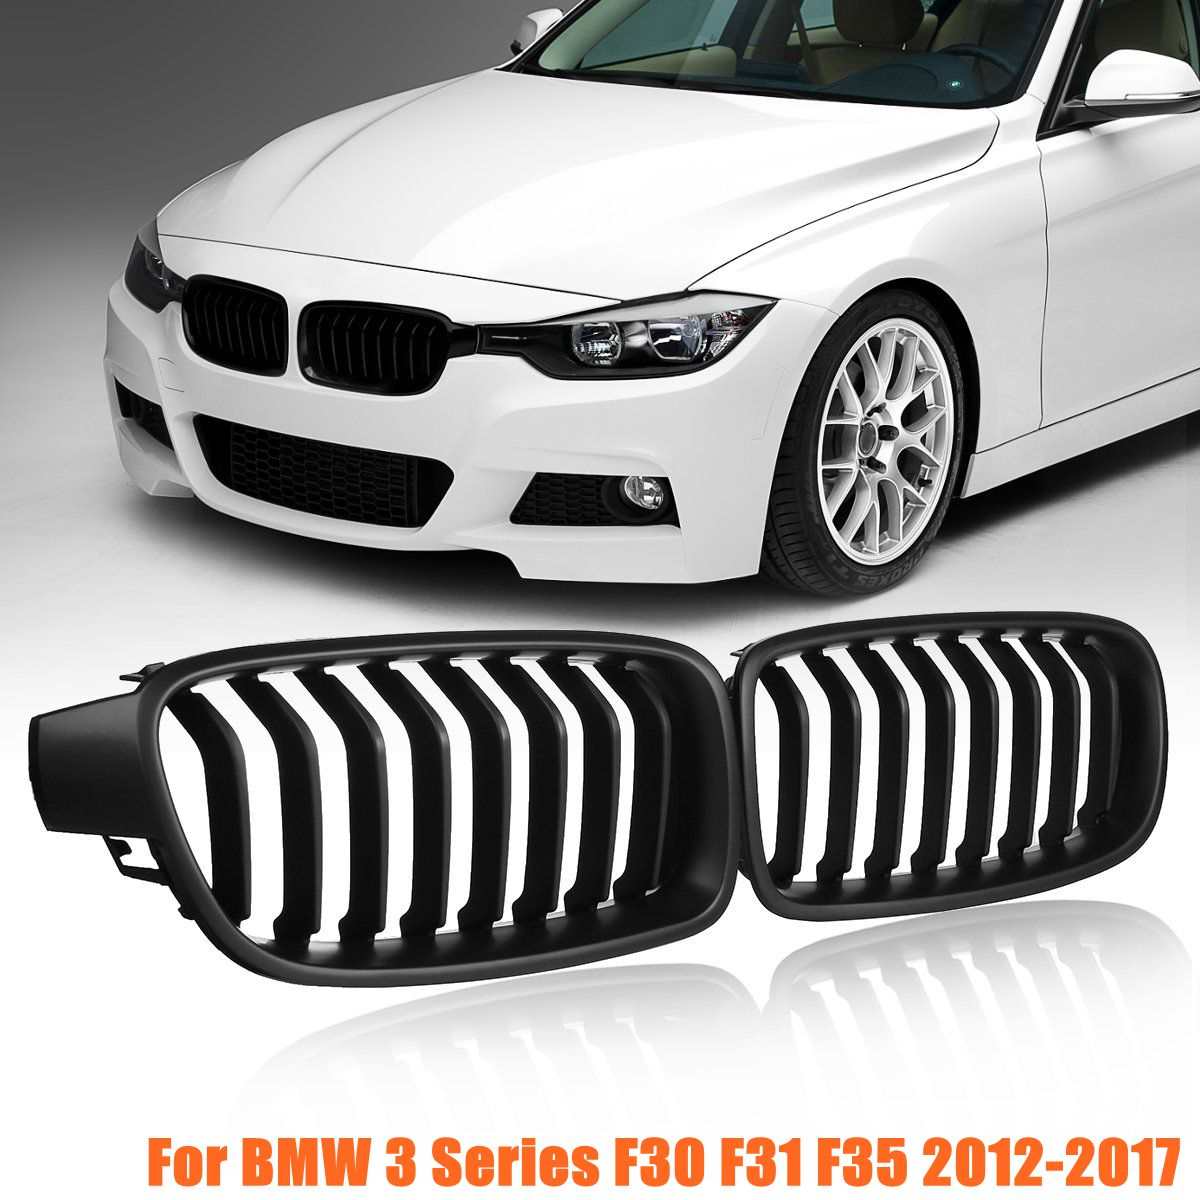 for BMW F30 F31 F35 3 Series 2012 2013 2014 2015 2016 2017 1Pair Front Kidney Grill Grilles Matte Black Car Styling Racing Grill image